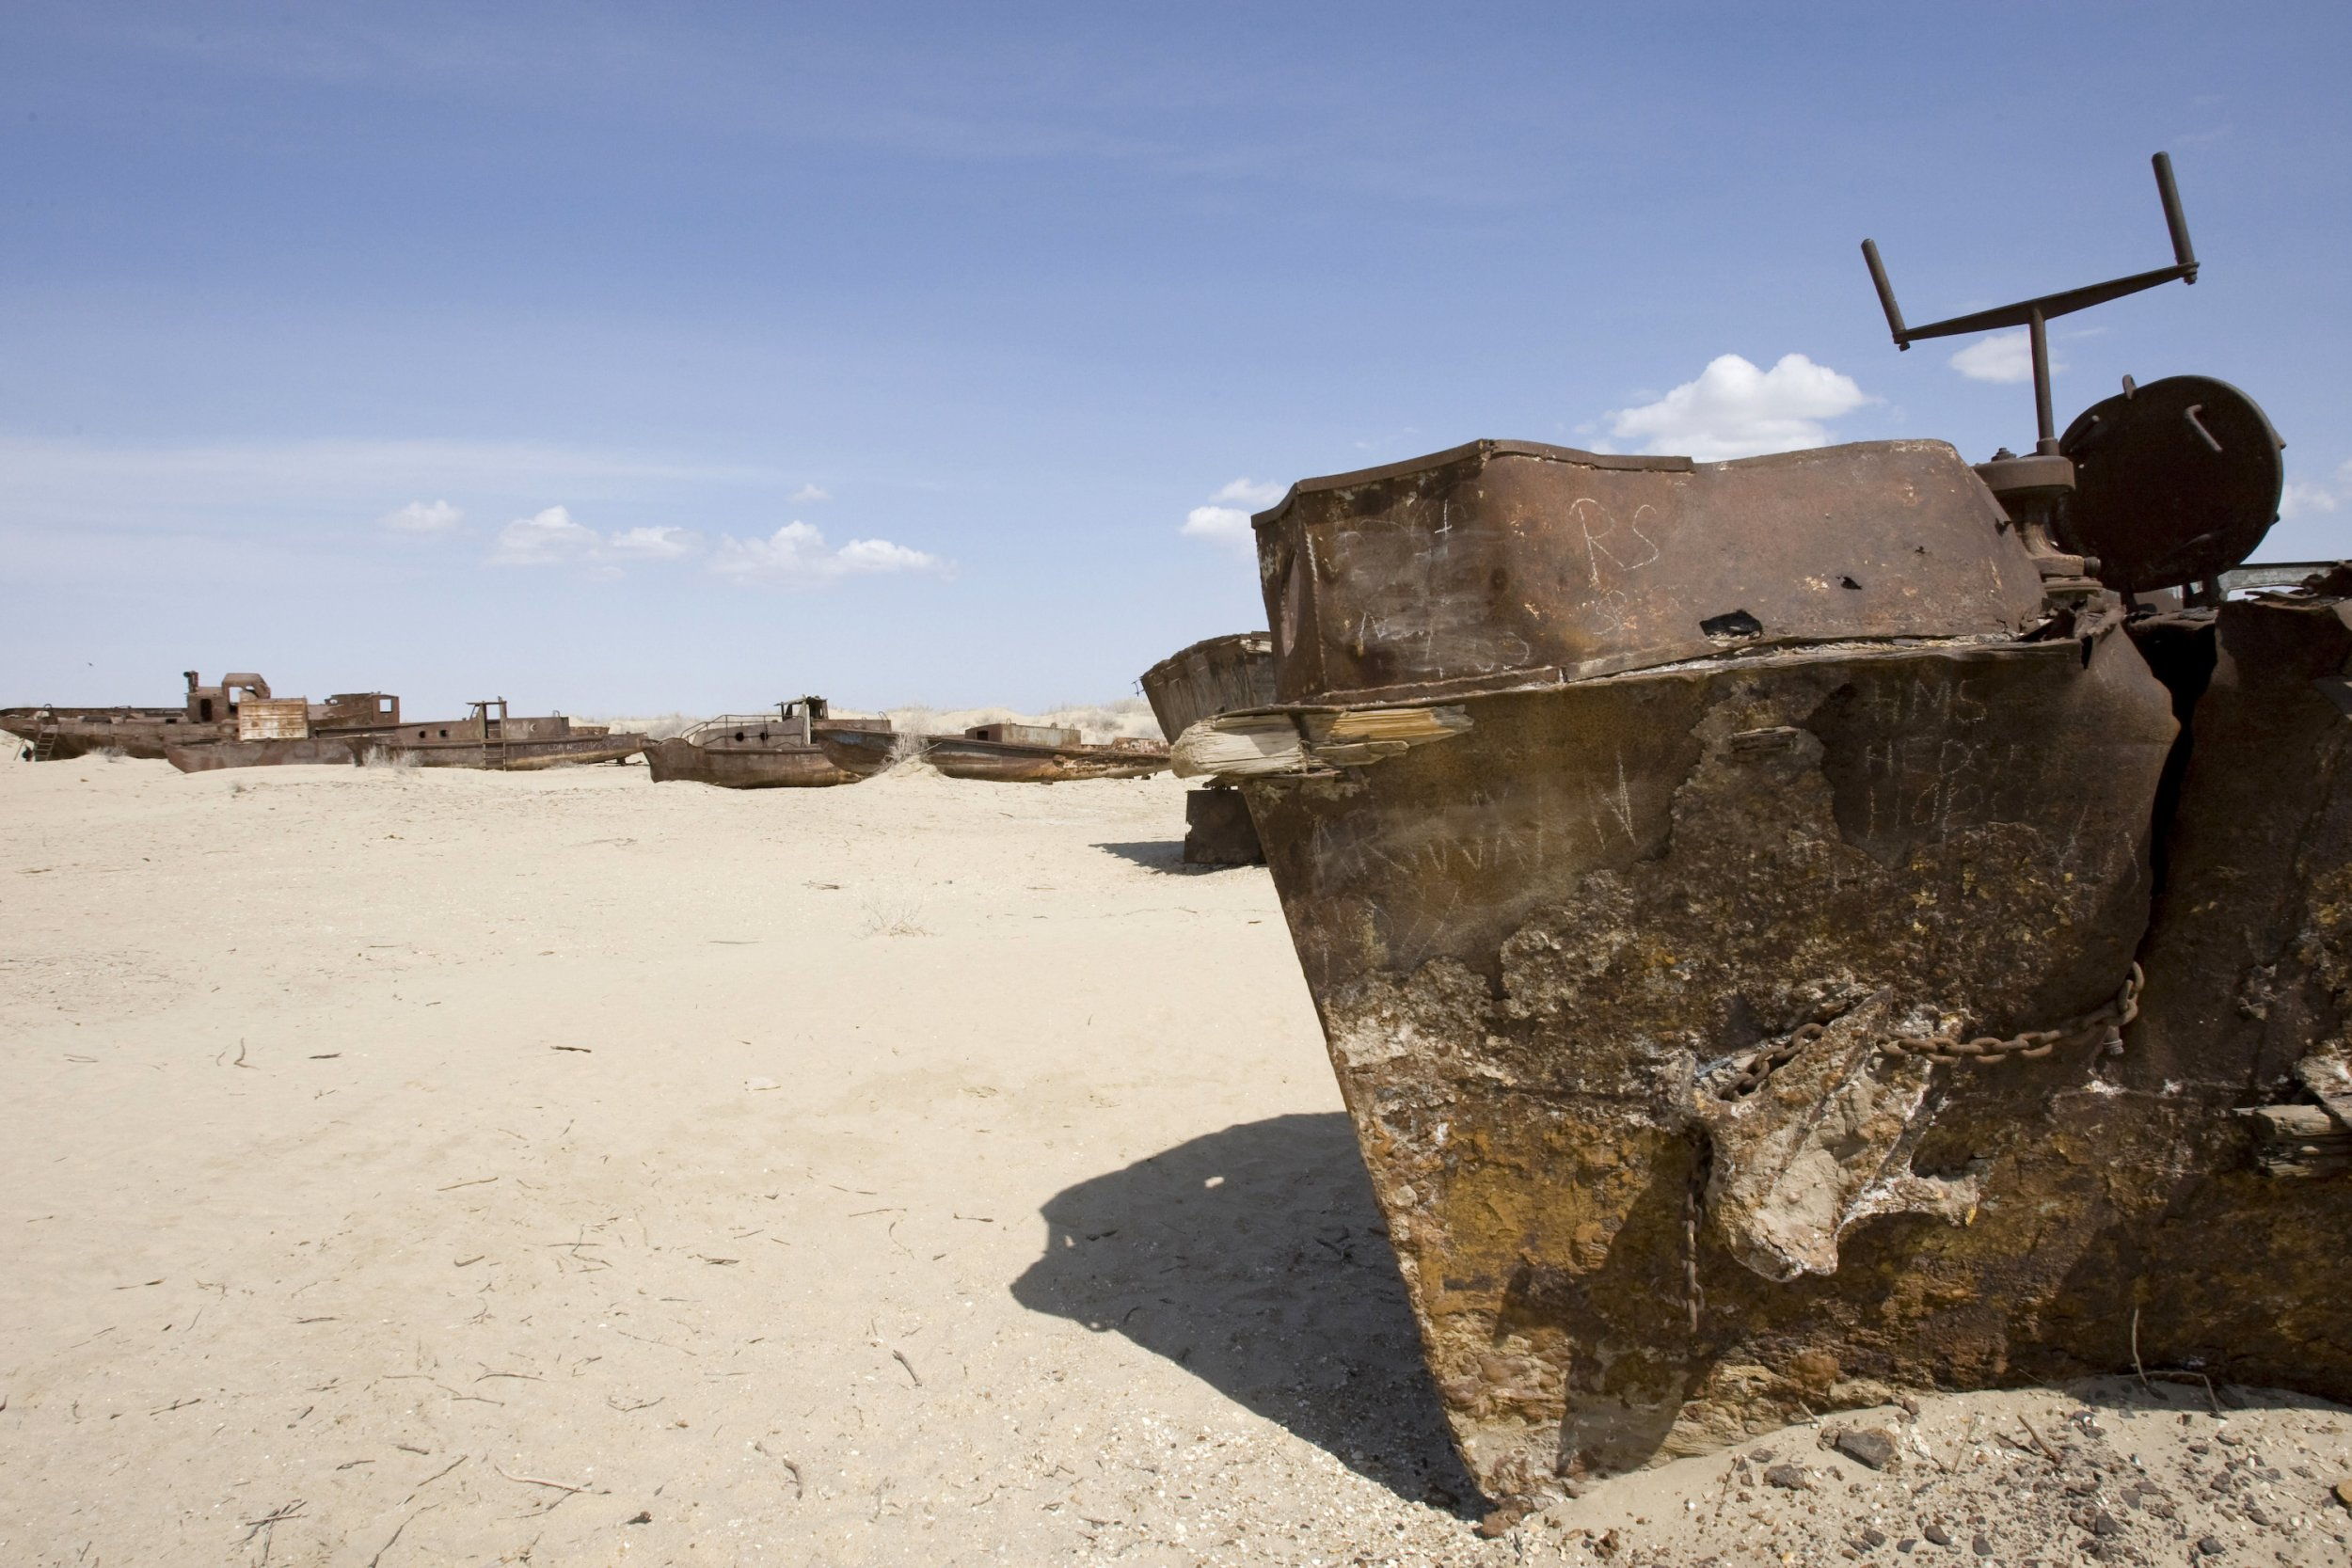 Muynak, a former port on the Aral Sea